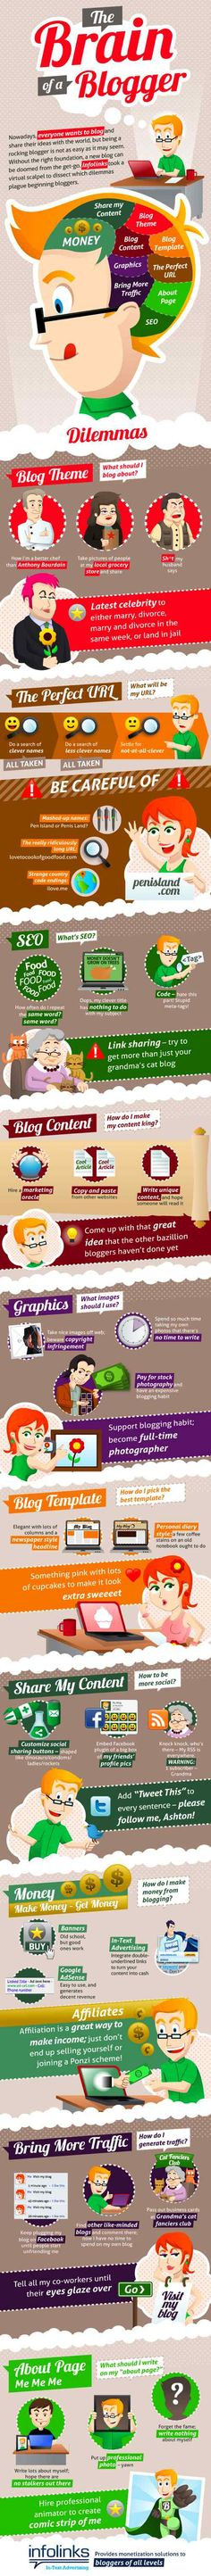 Afternoon Everyone, Hope Your Monday Is Going Well, Here A Little Infographic To Keep You Going, On The Brain Of A Blogger. The Infographic, Produced By The People At infolinks, It Looks At Some Of The Common Misconceptions That Beginner Bloggers Have On Issues Ranging From Content And SEO To Graphics And URLs.